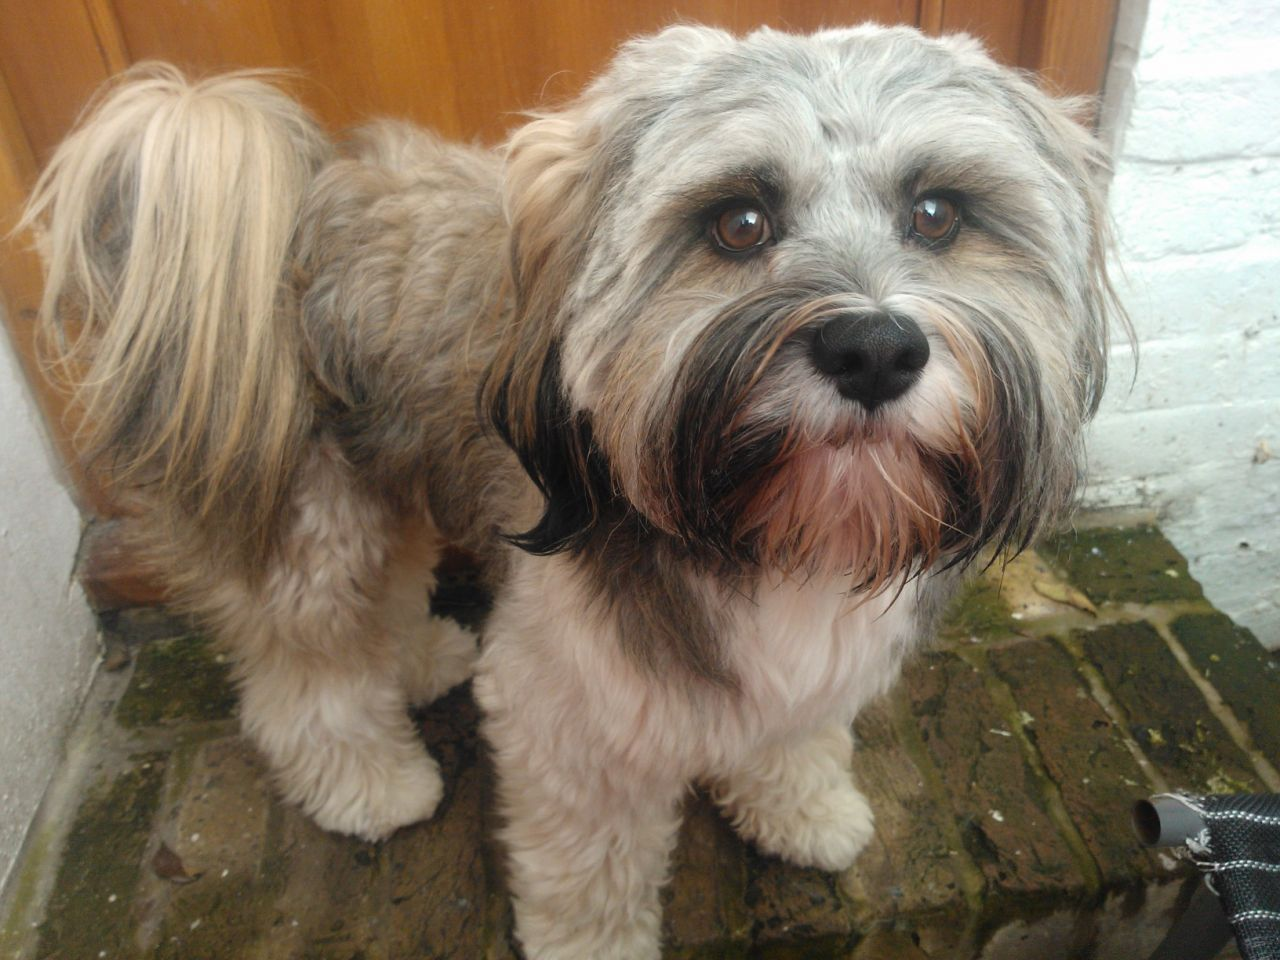 himalayan terrier tibetan terrier breed guide learn about the tibetan terrier 2807